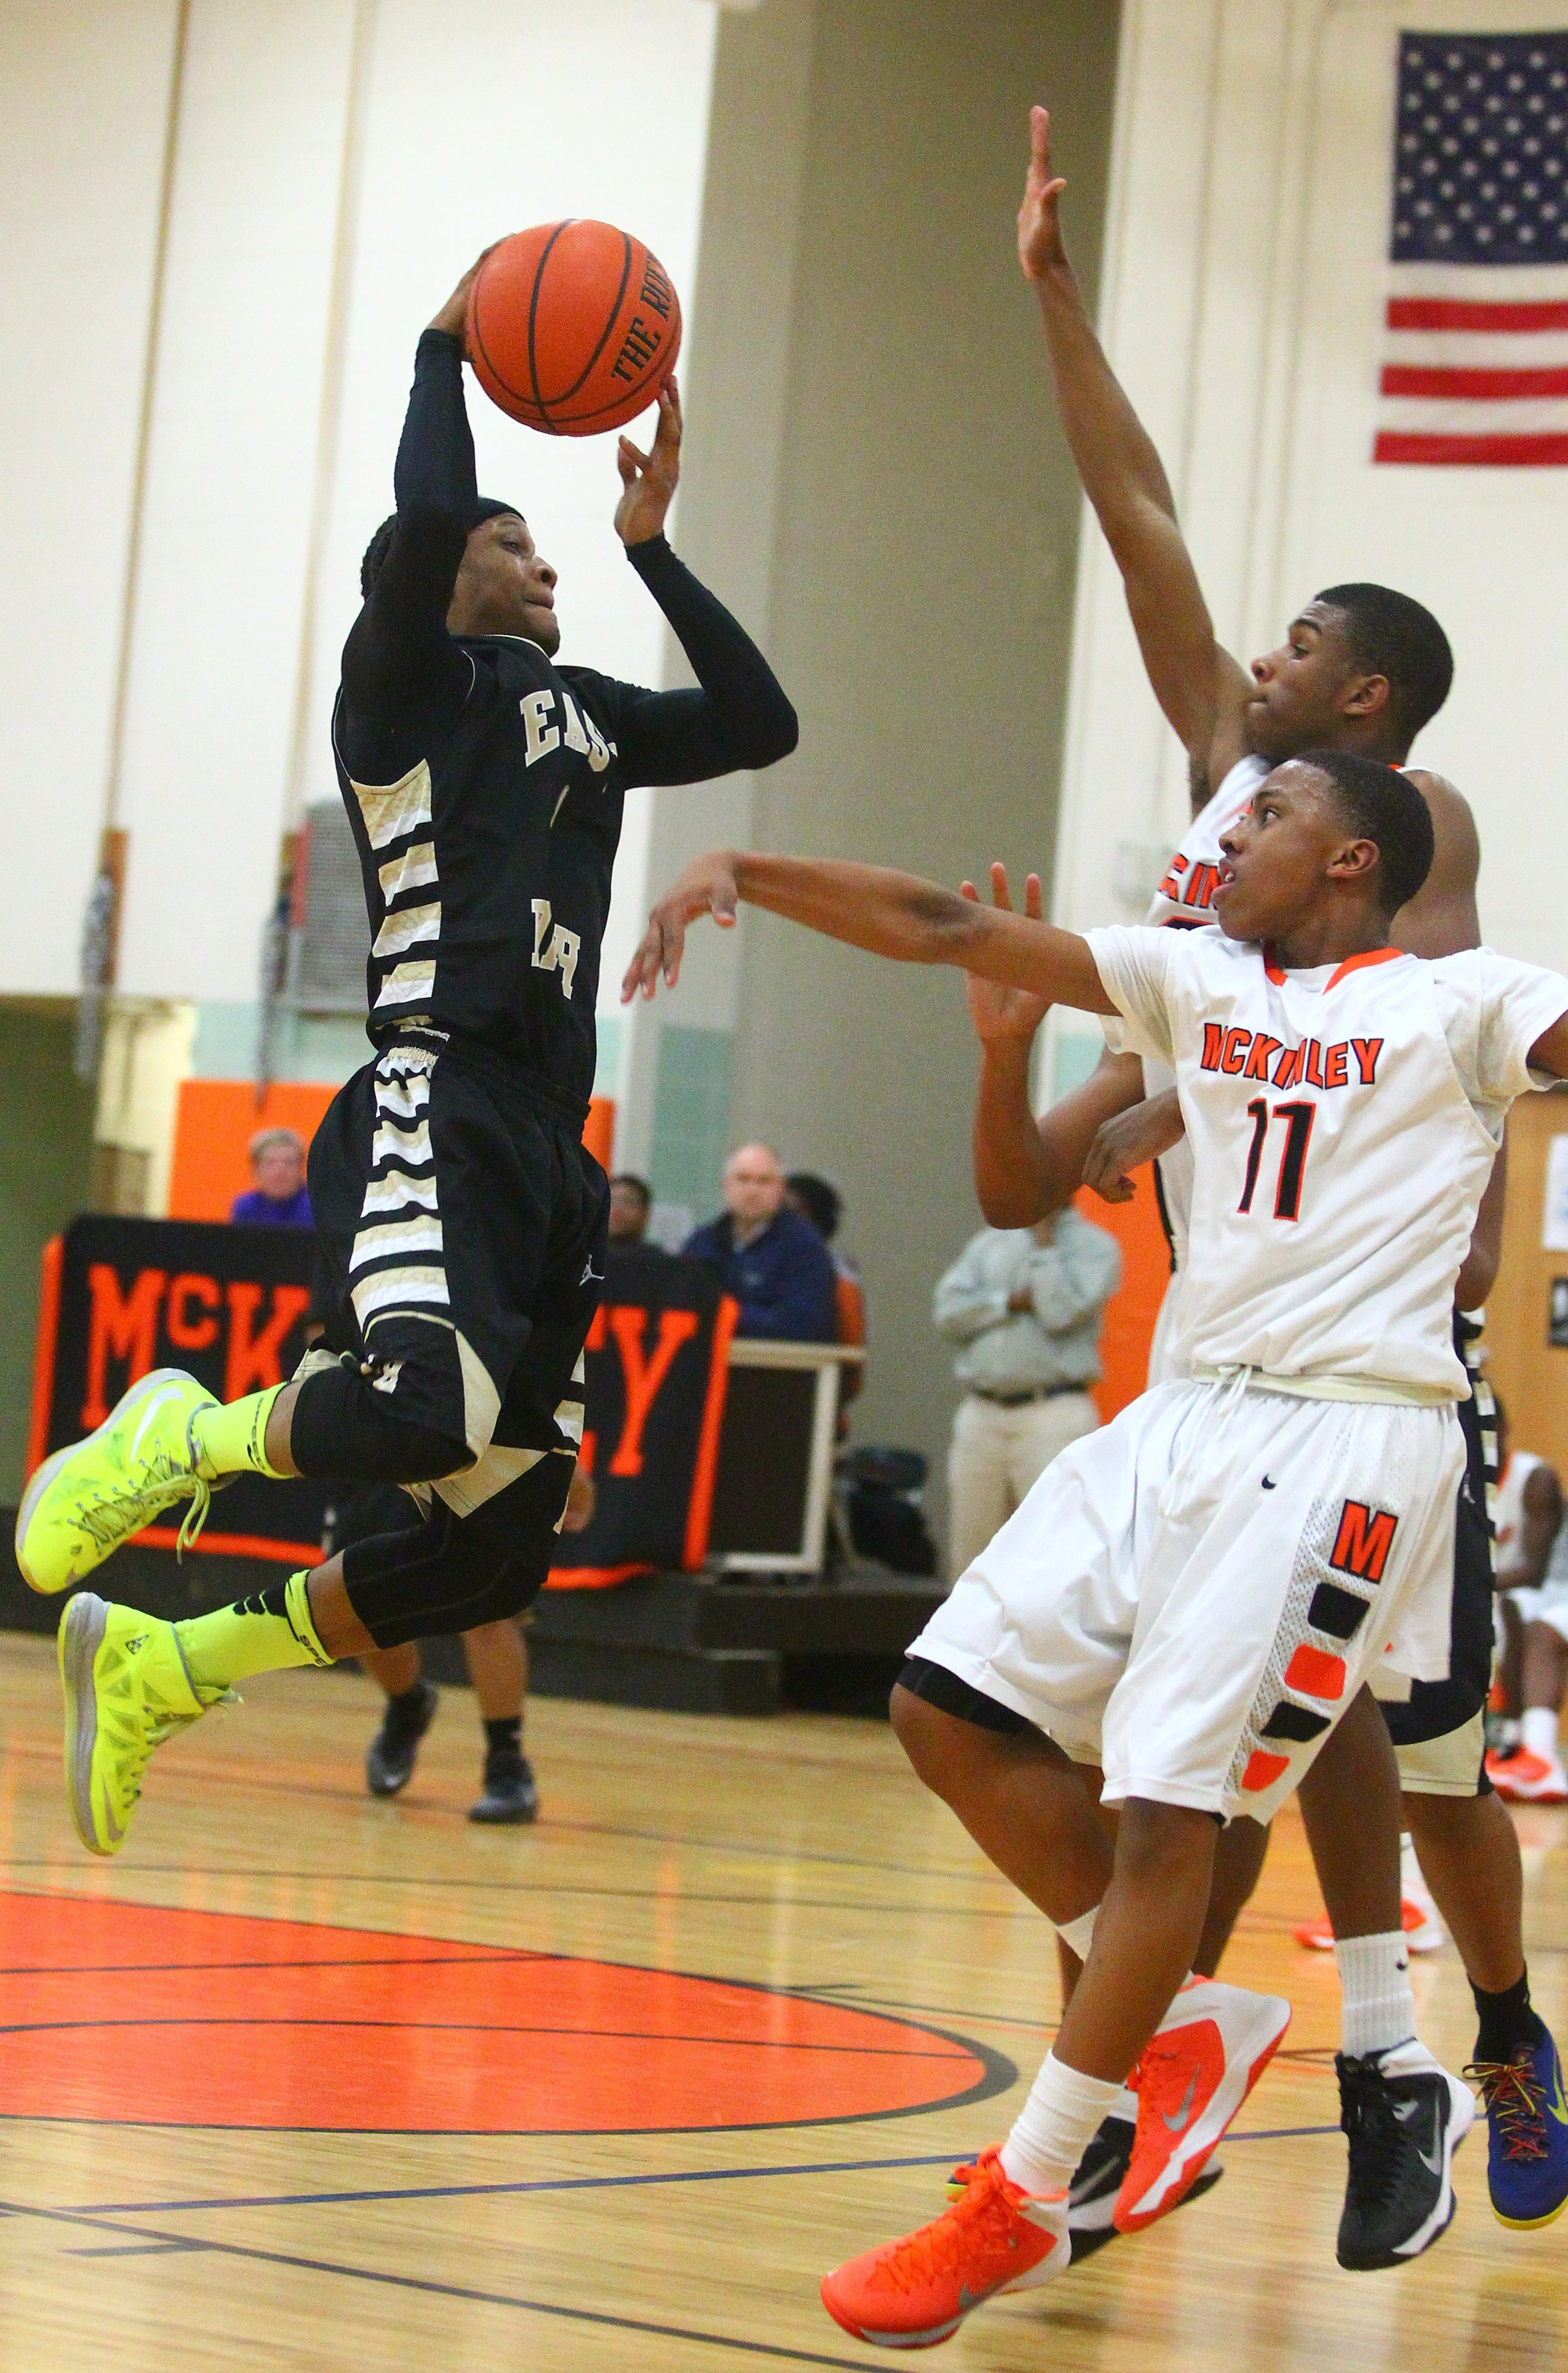 East's Johnathan Lewis played extremely well in Thursday's win over McKinley.